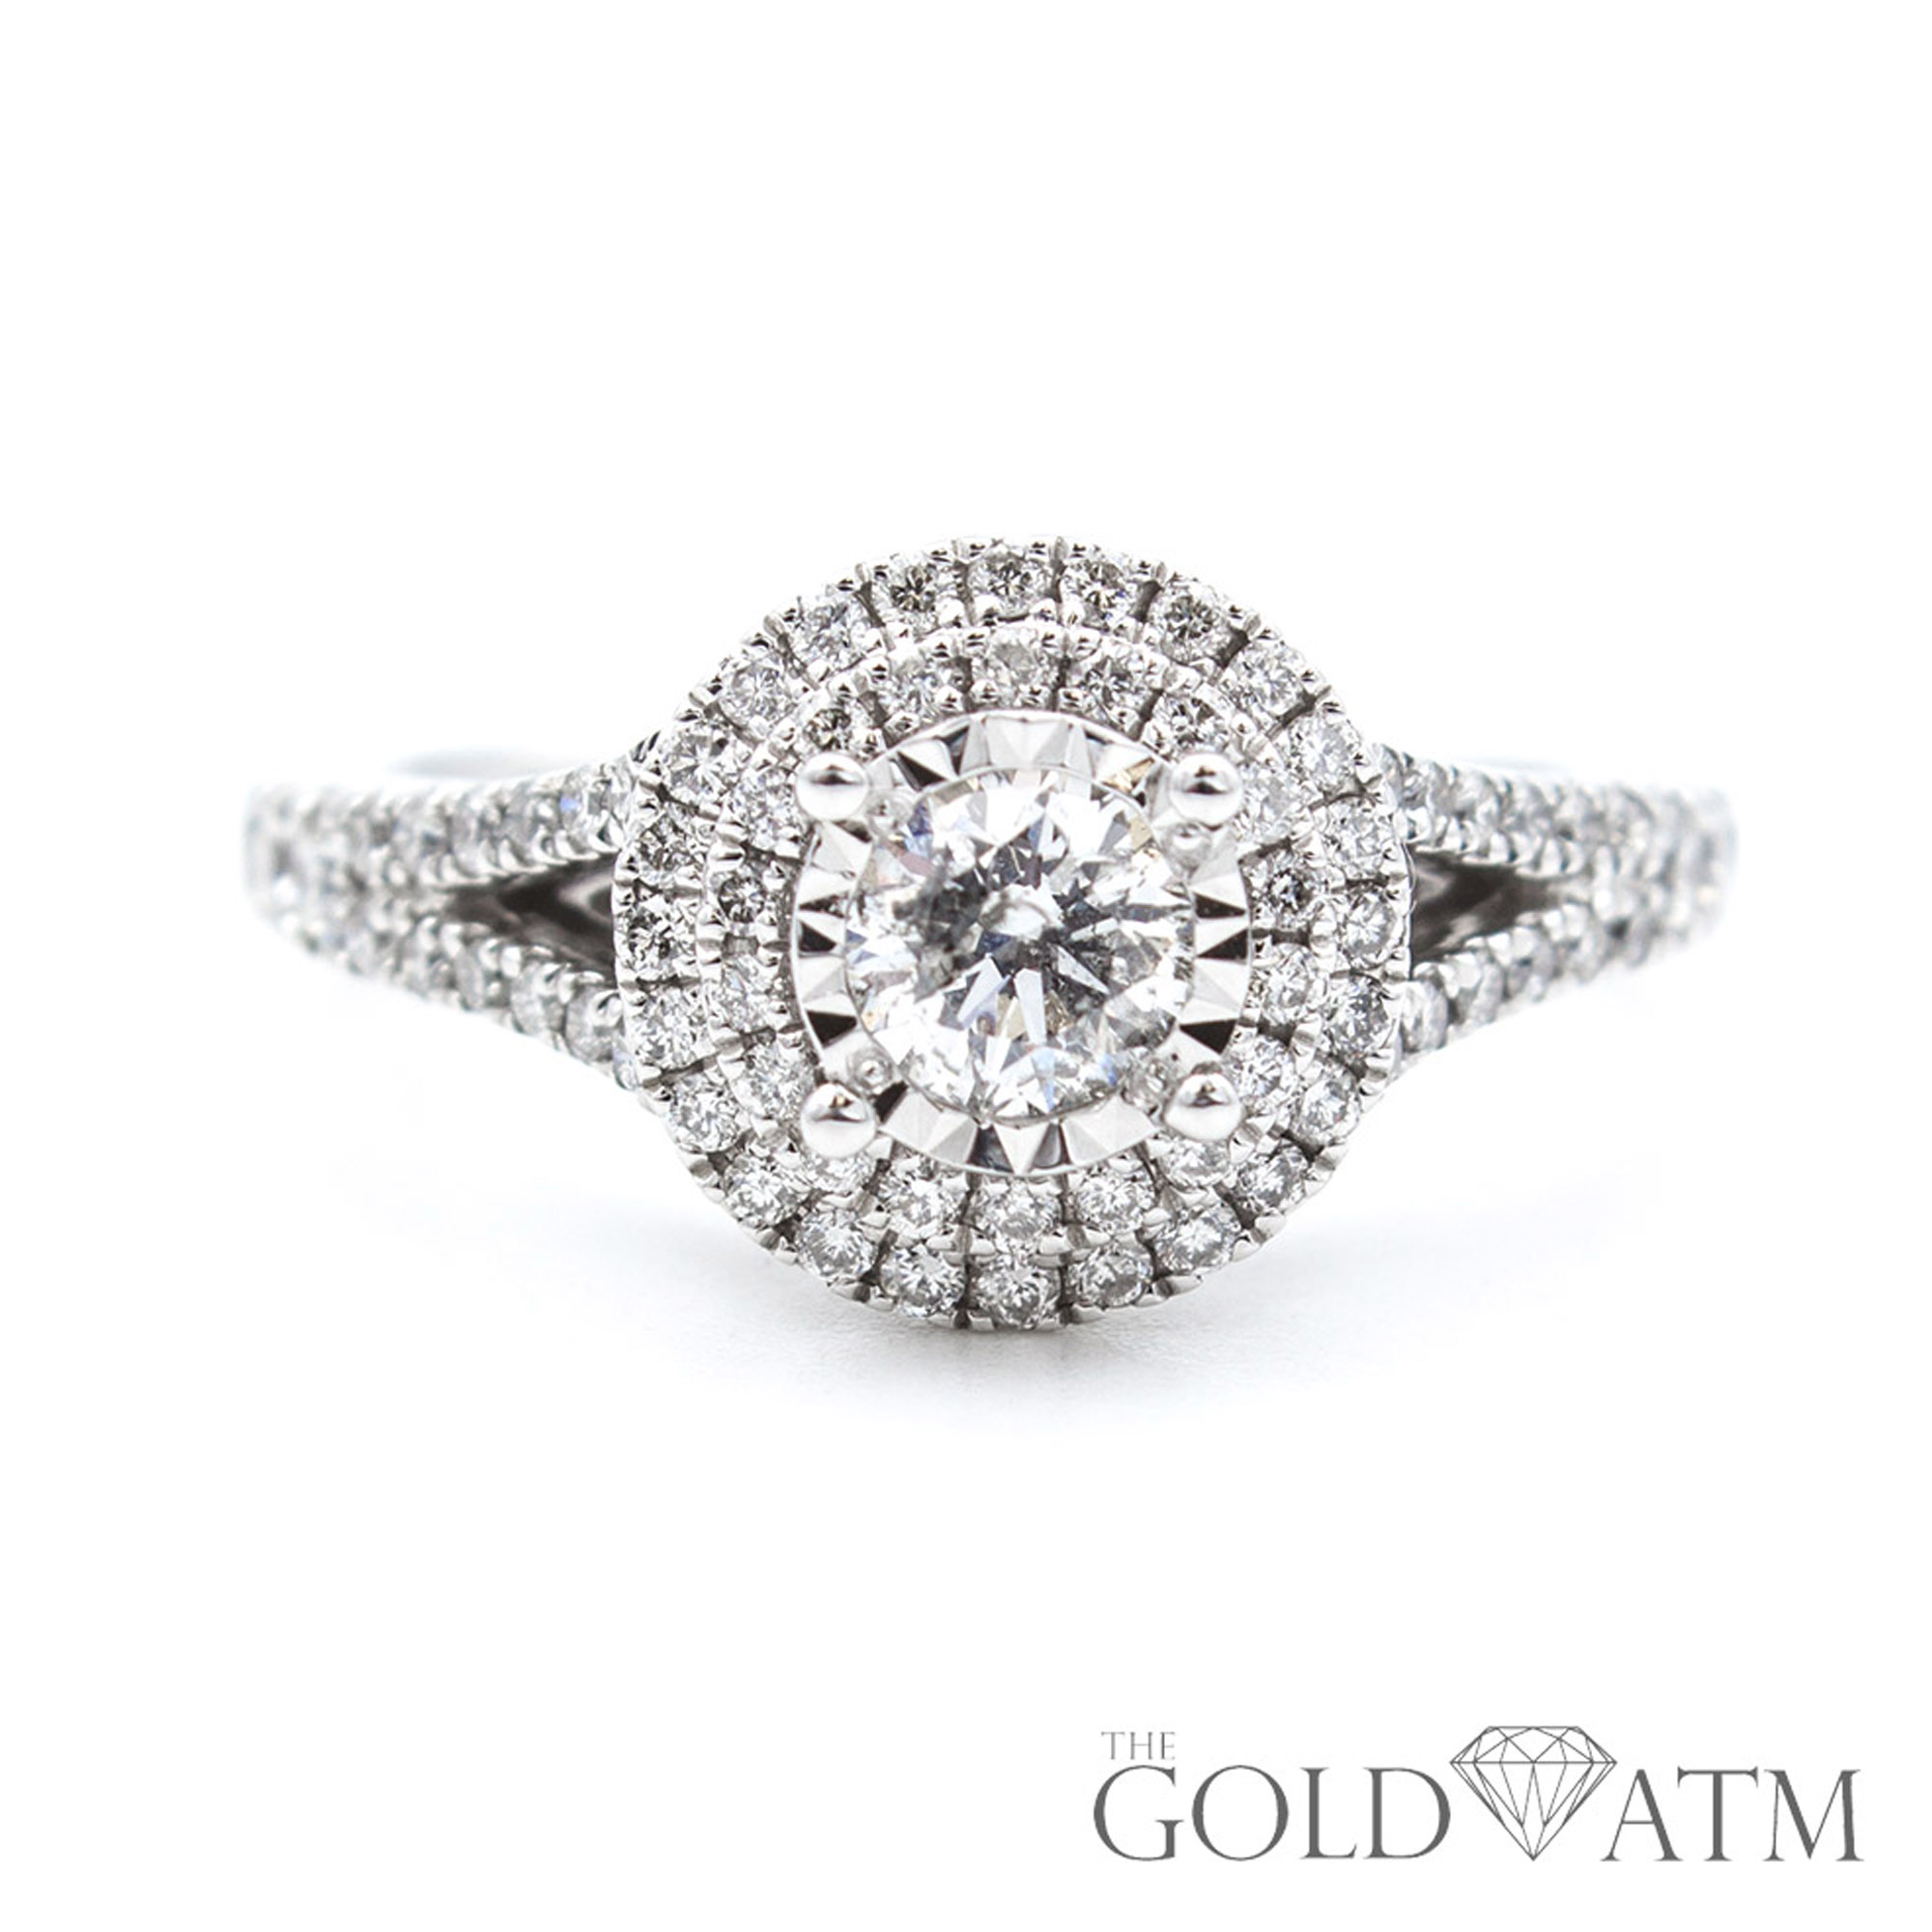 9a7d2d1cd 14K White Gold .33ct Diamond Engagement Ring from Kay Jewelers ...